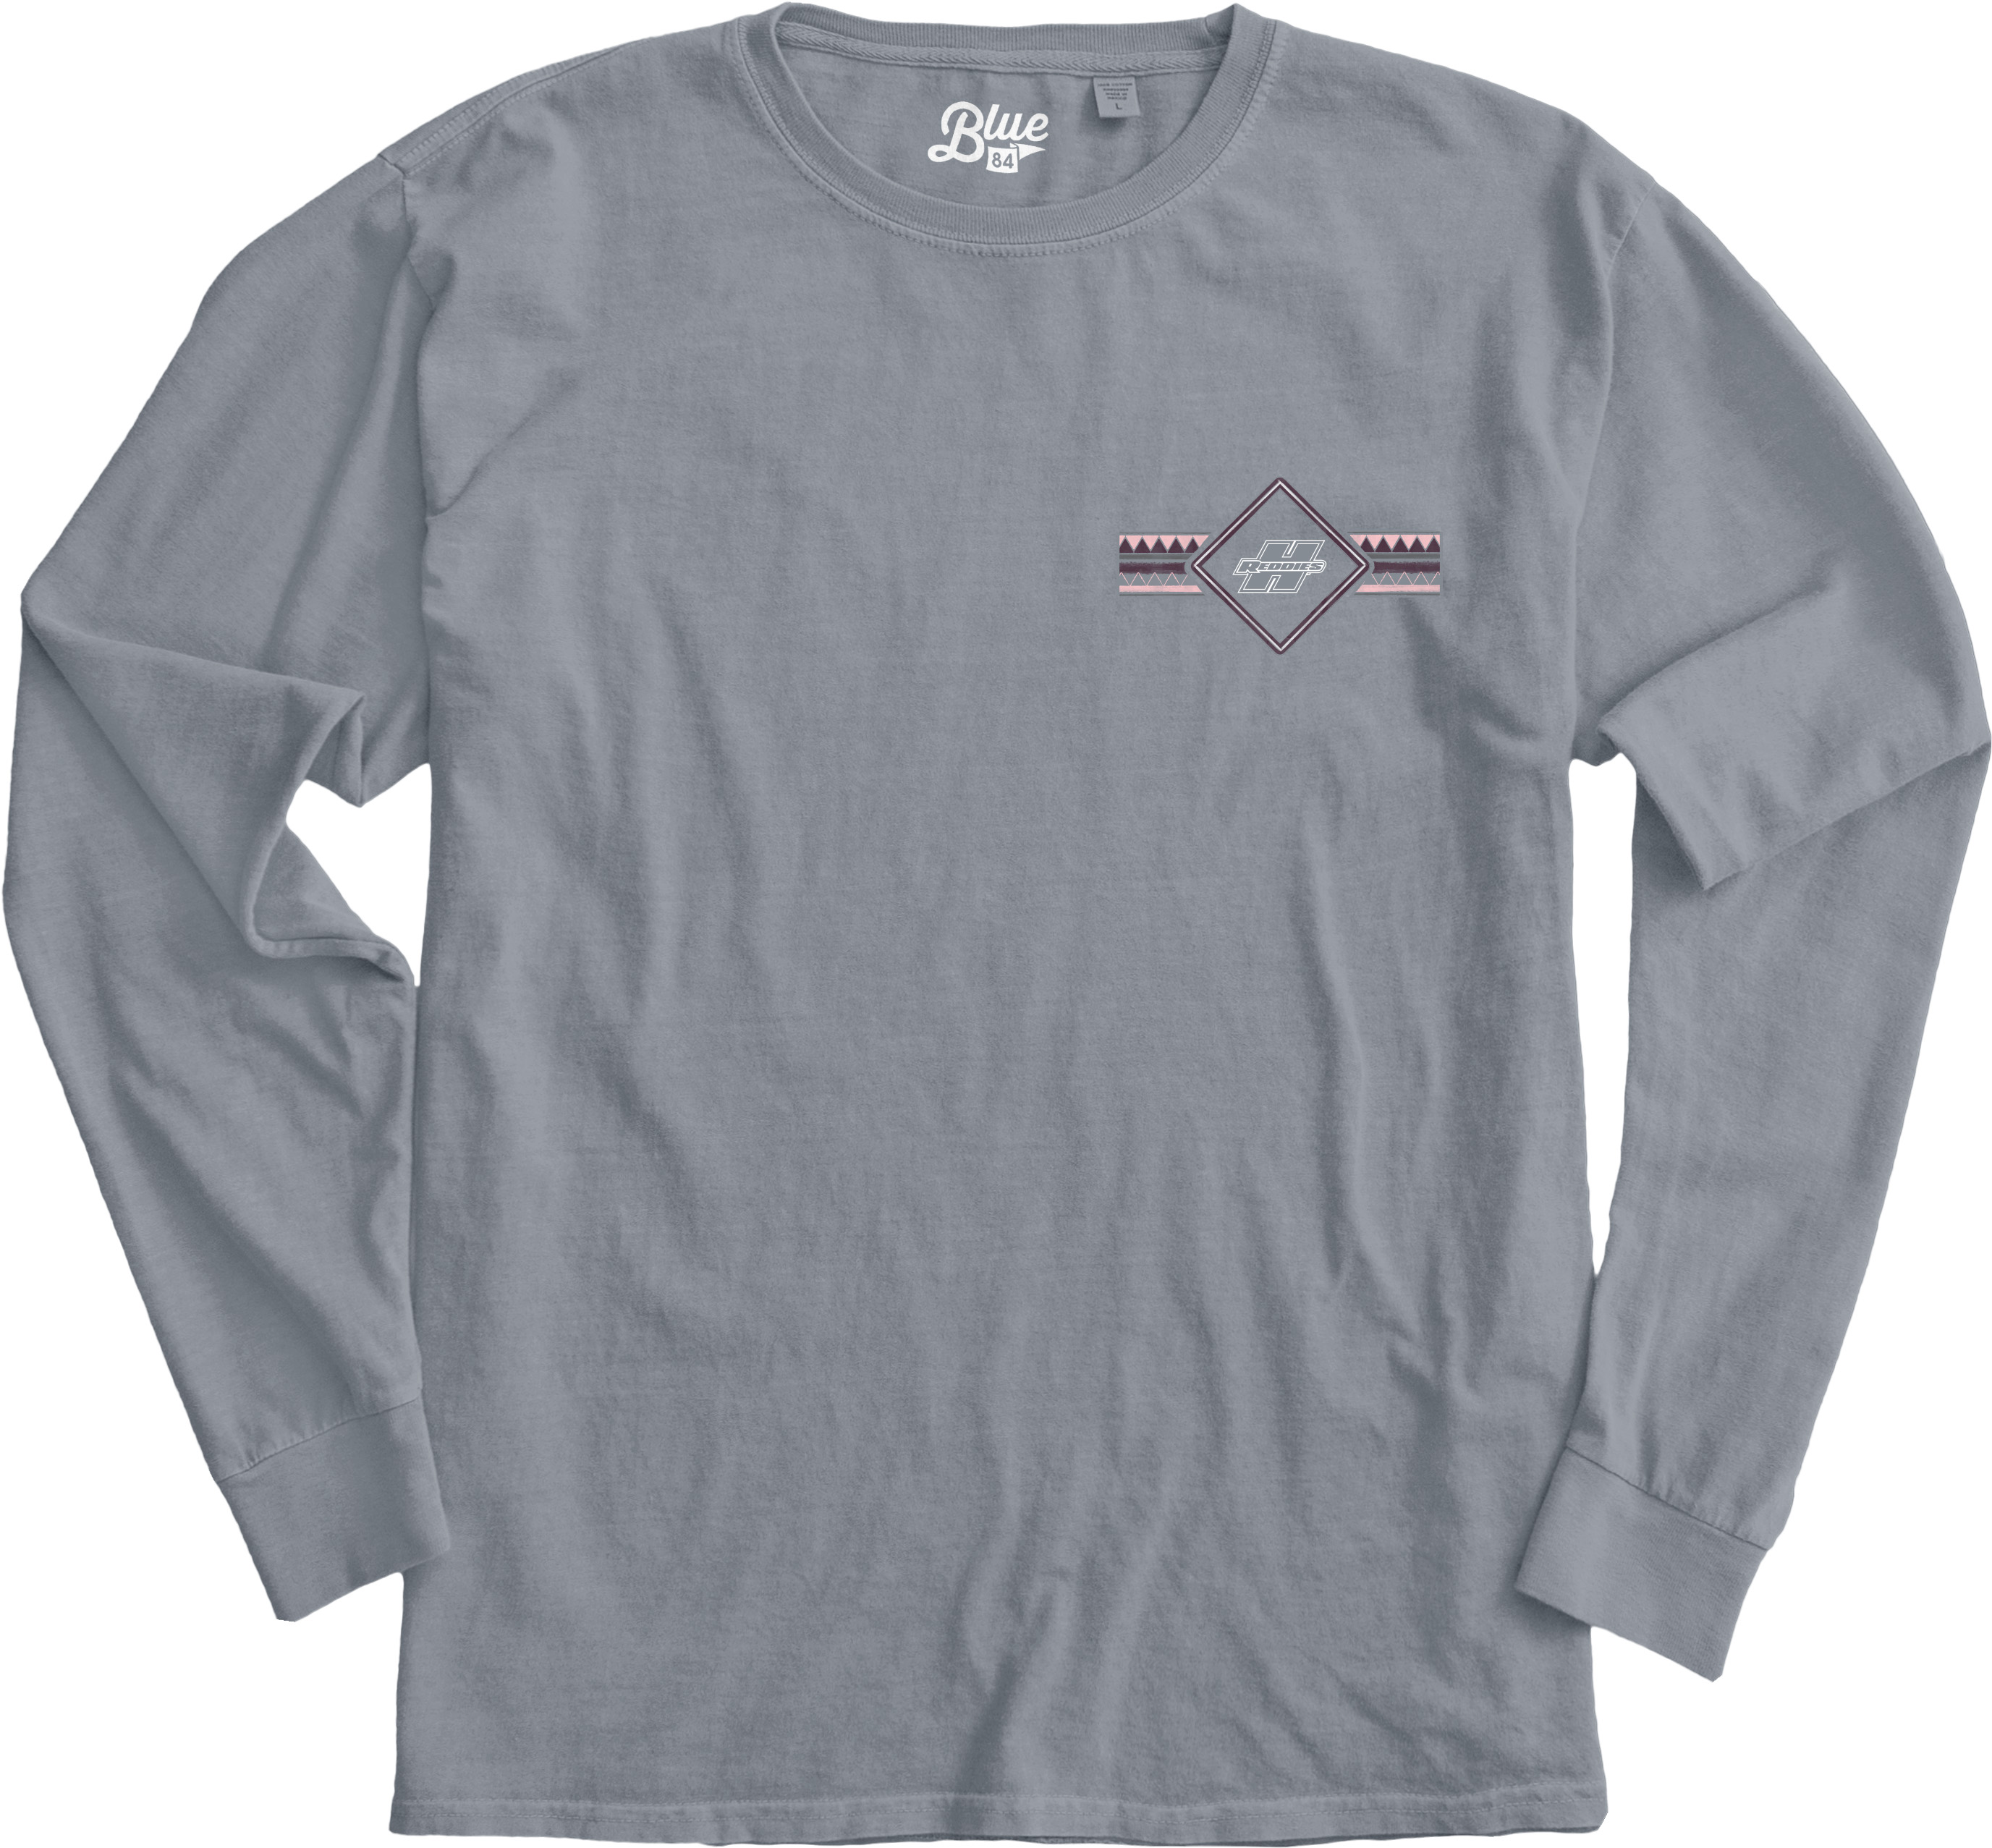 Henderson Reddies Arts And Crafts Long Sleeve T-Shirt